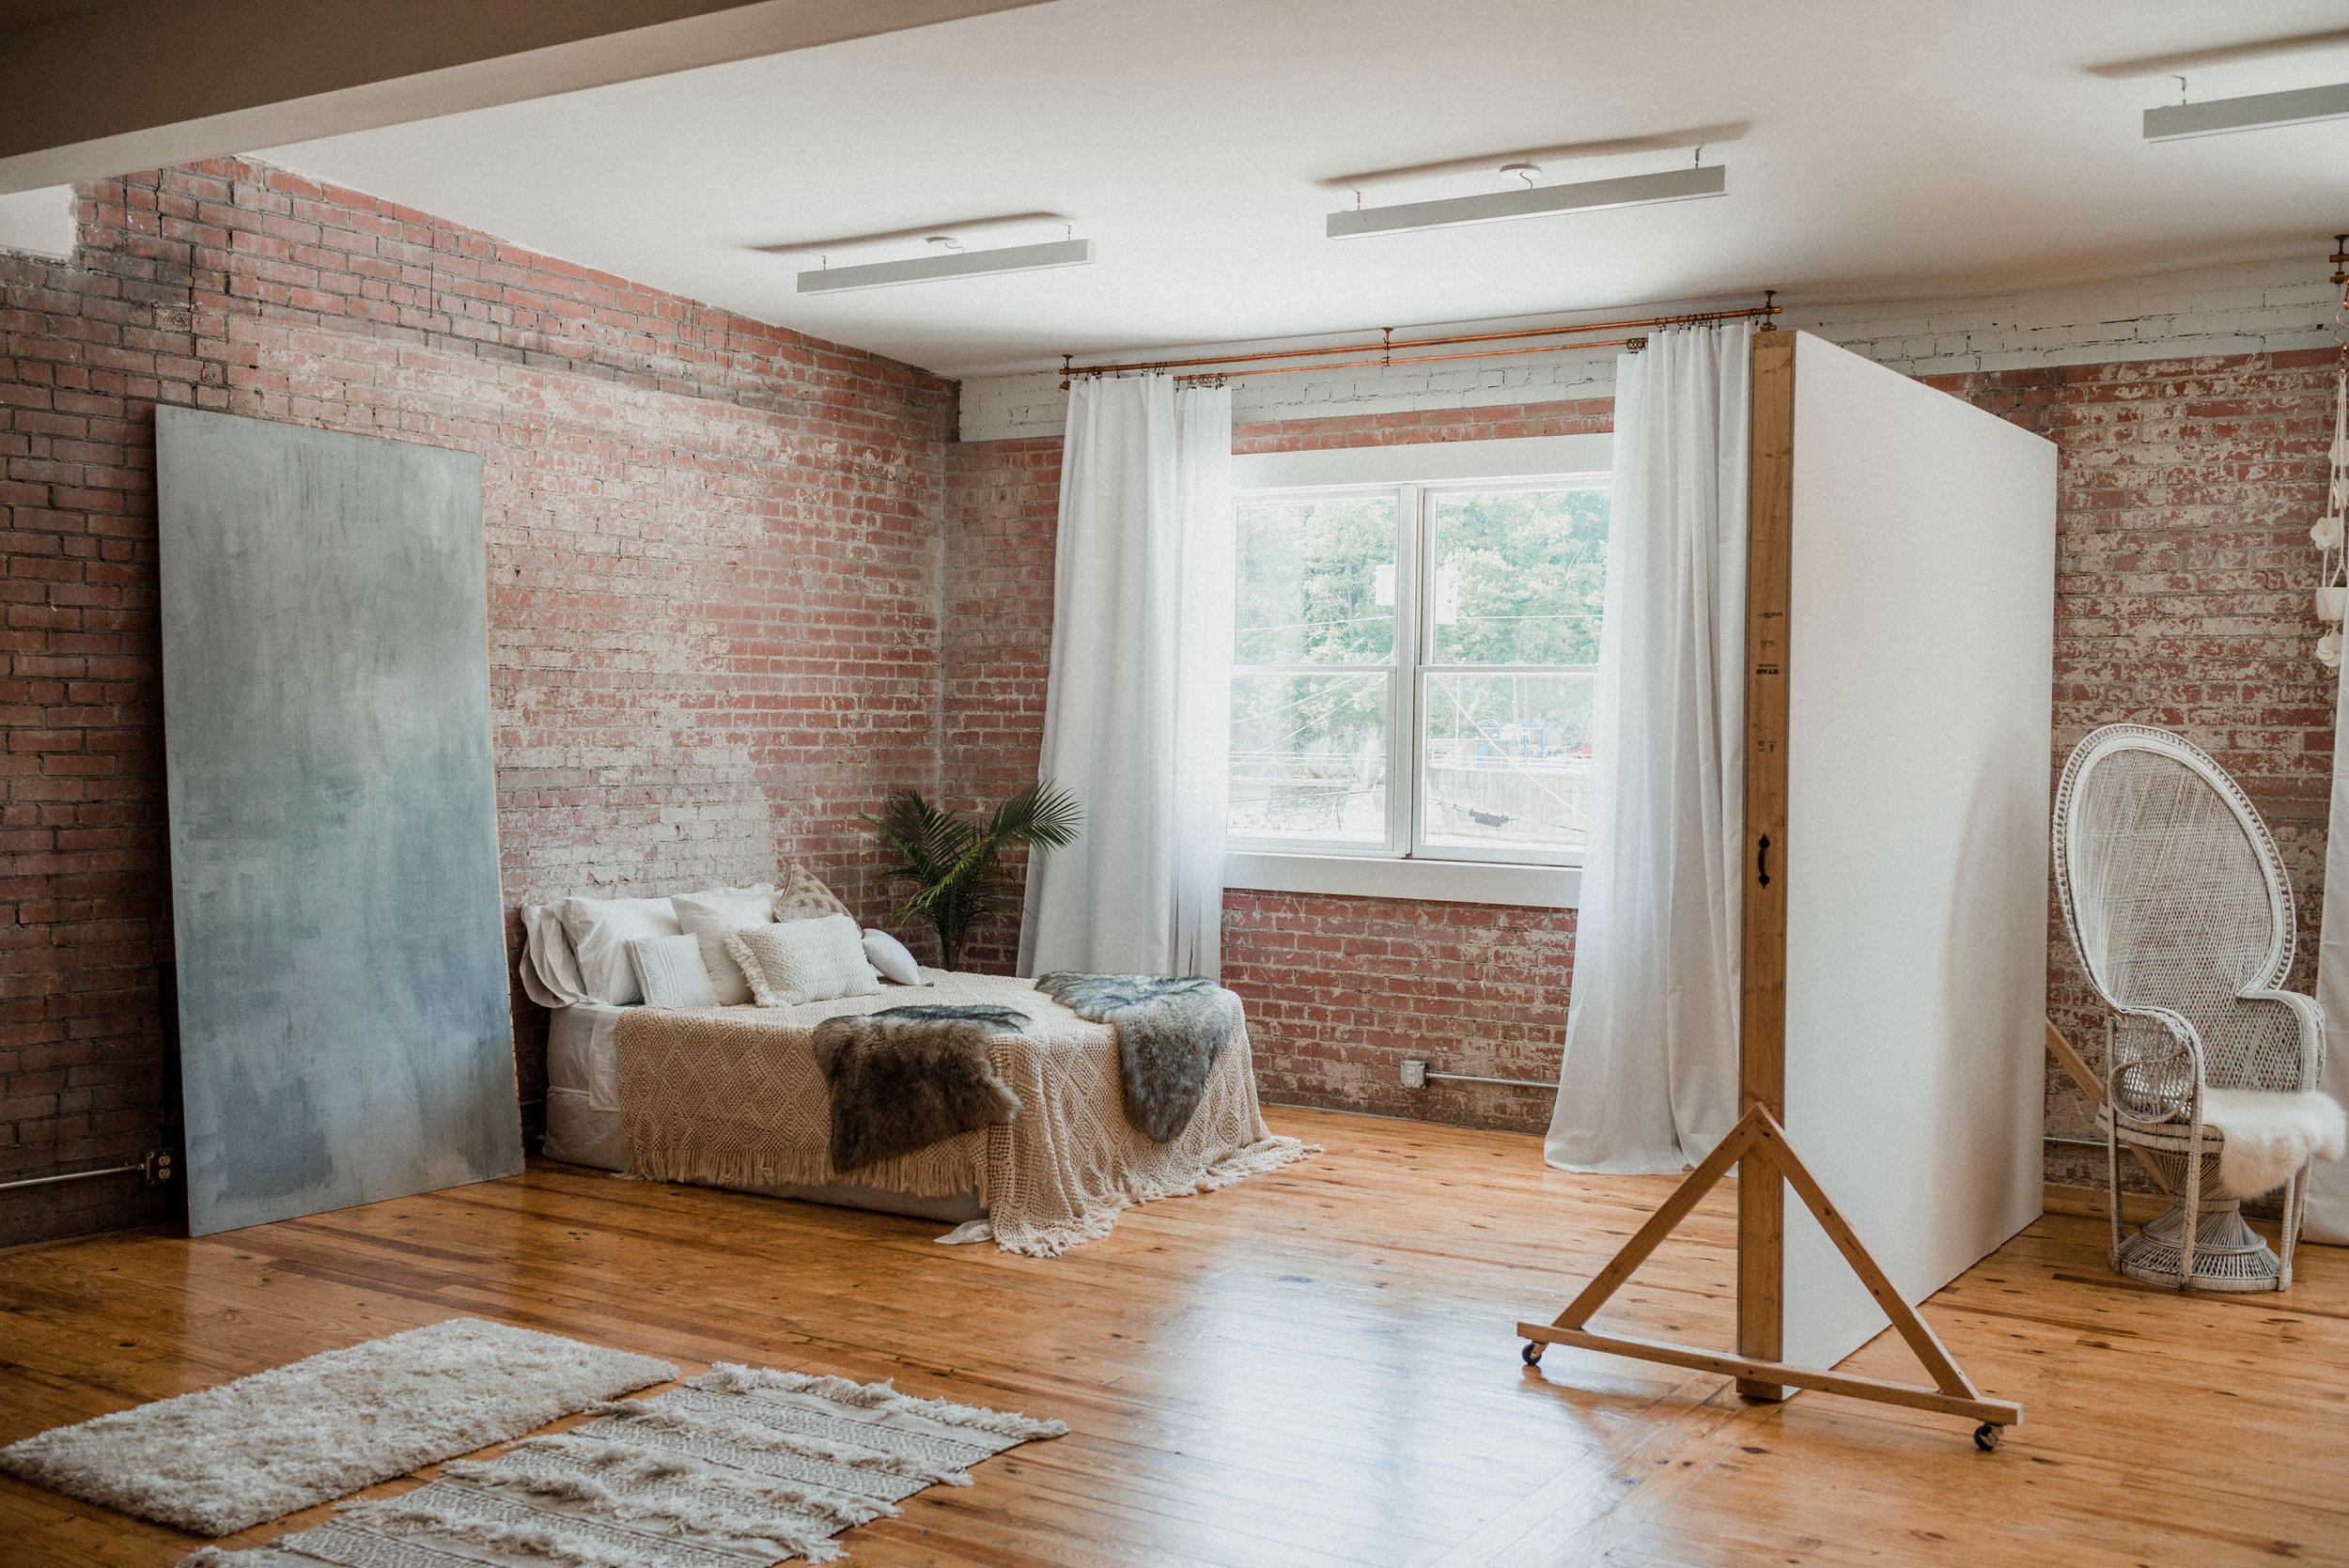 Photography Studio For Hourly and Daily Rental in Marshall, NC in the Asheville, NC area. Natural light. Loft Style.